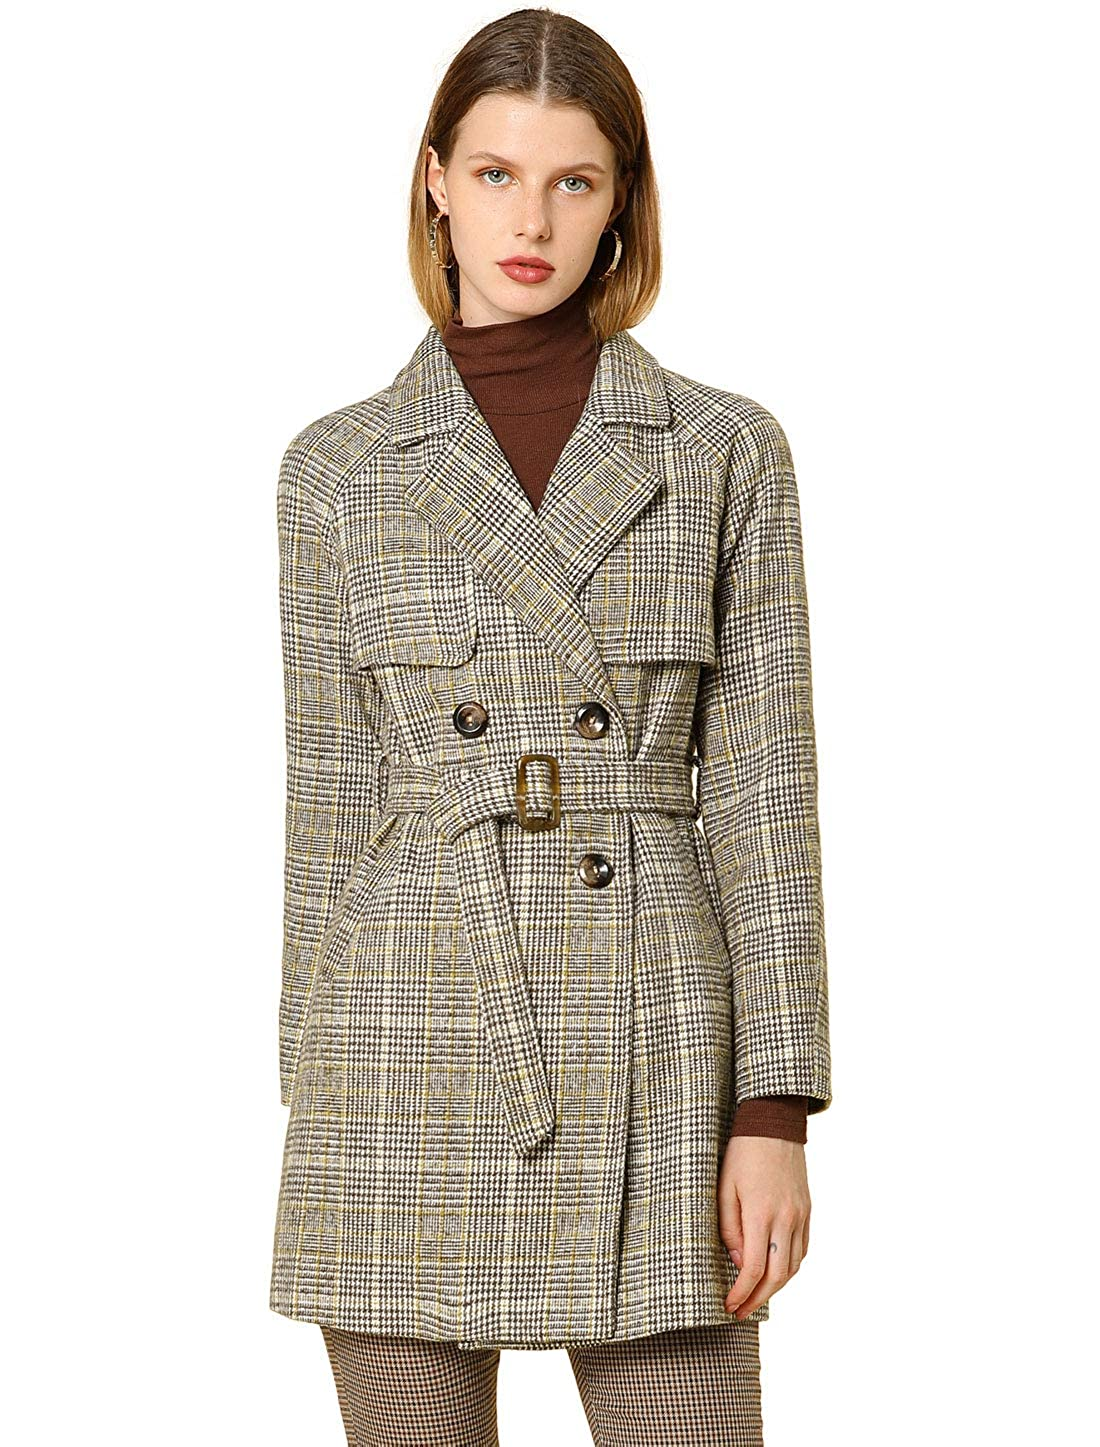 70s Jackets & Hippie Vests, Ponchos Allegra K Womens Double Breasted Raglan Sleeve Belted Plaid Trench Coat $68.99 AT vintagedancer.com